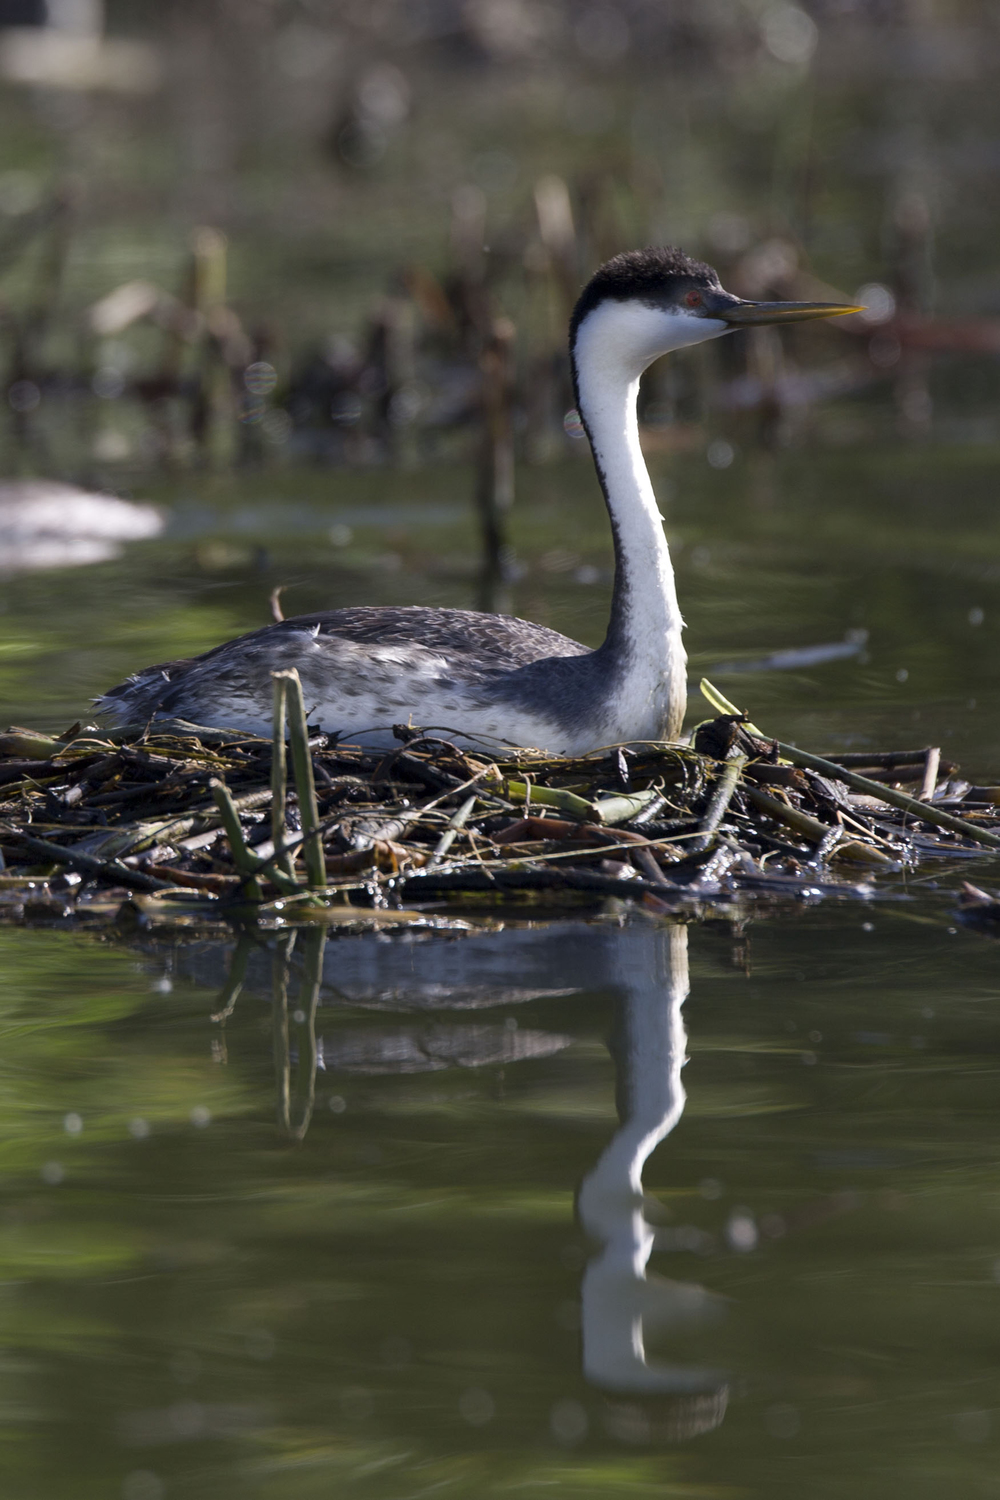 Grebe sitting on nest                                            image courtesy of Cathy Buse